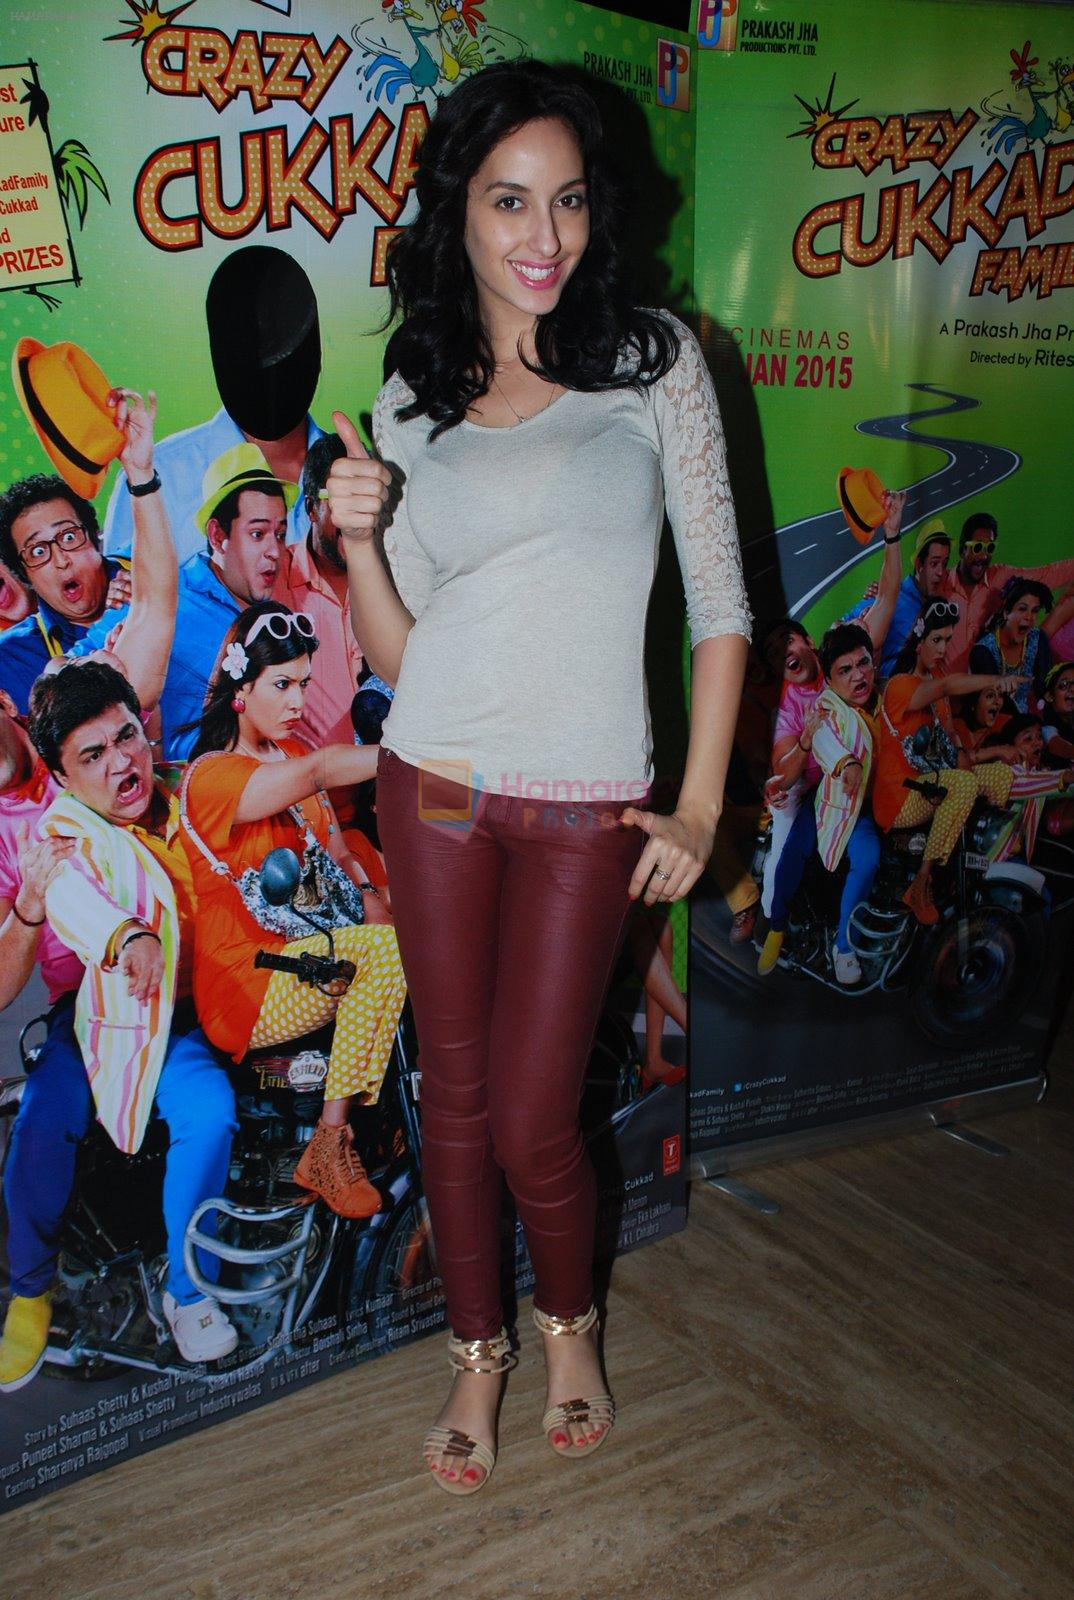 at Crazy Cukkad Family screening in Cinemax, Mumbai on 20th Jan 2015